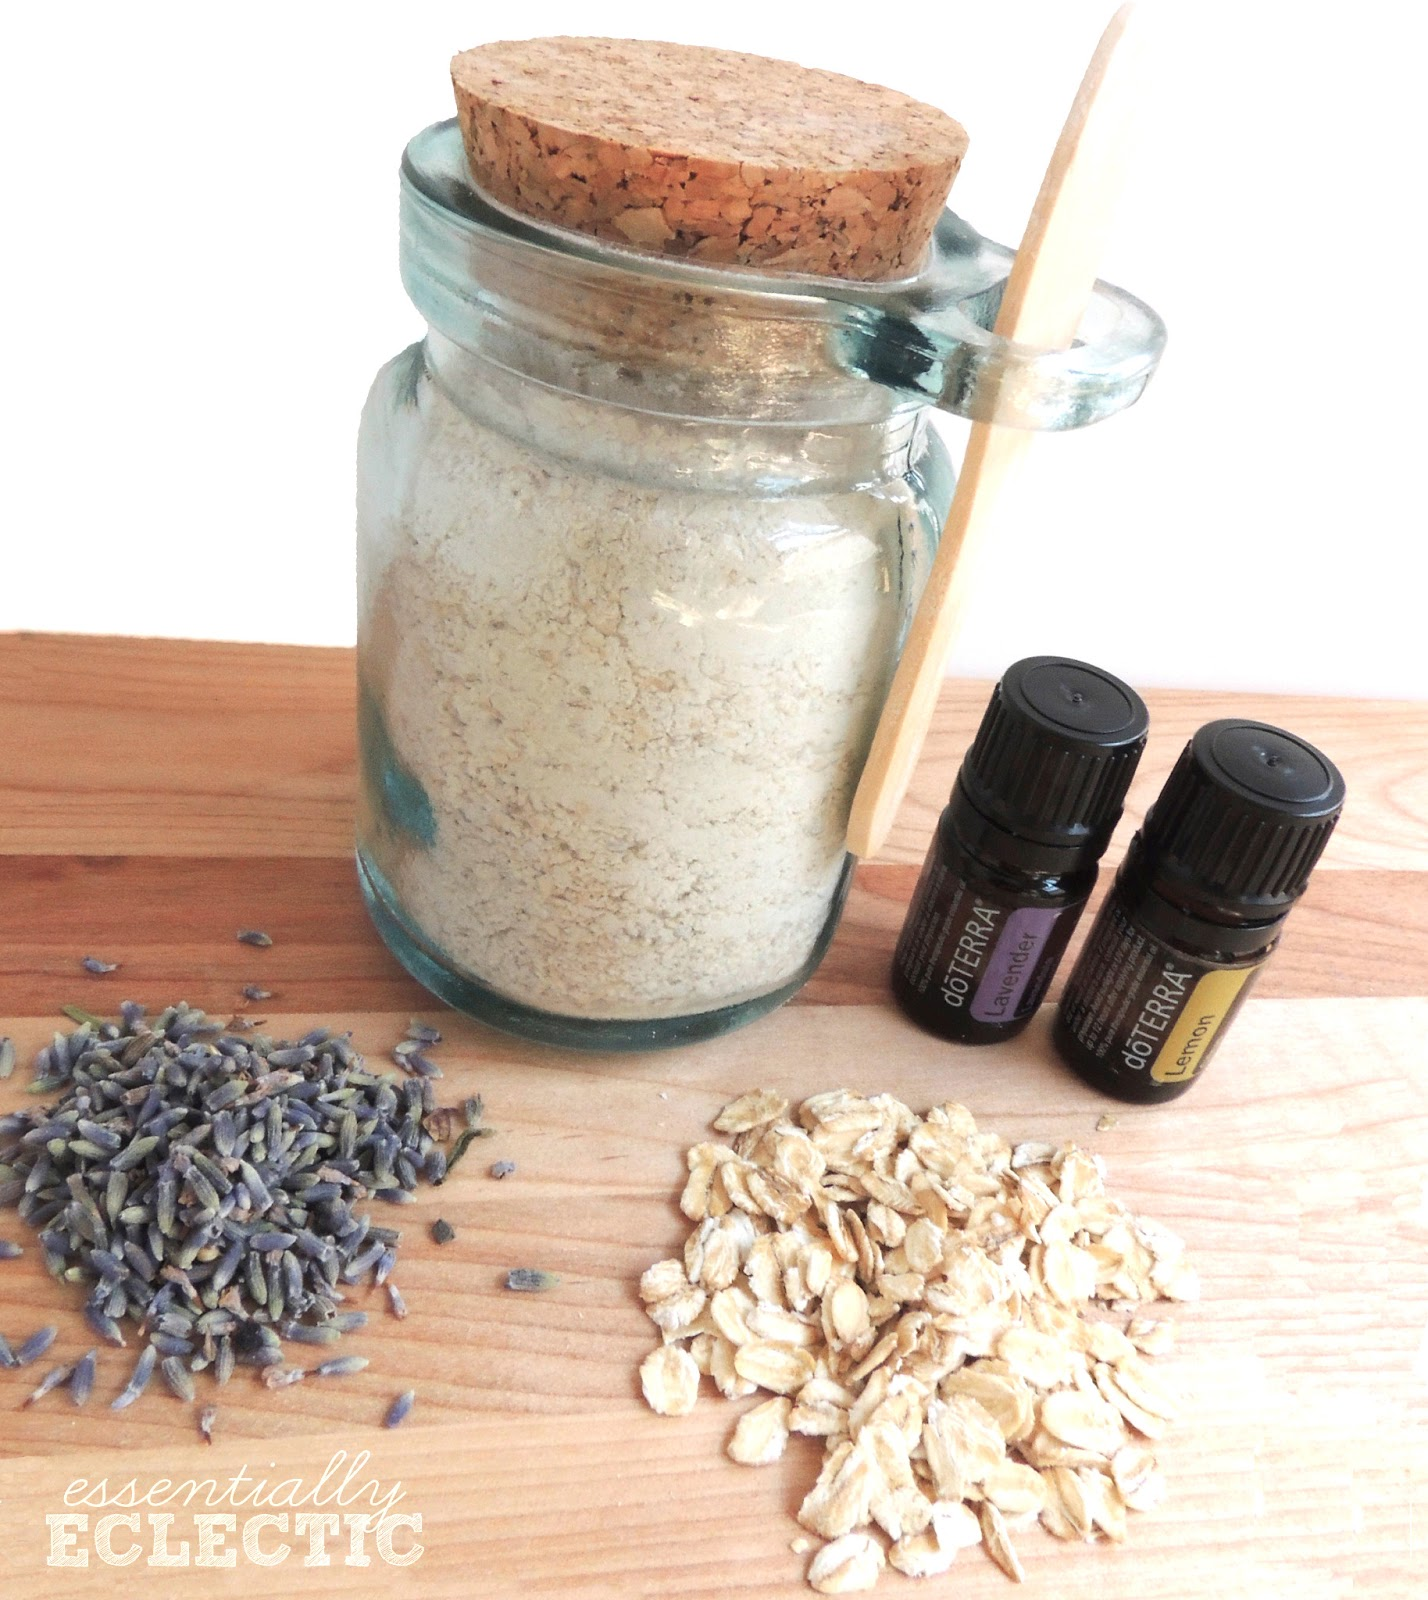 Lavender and lemon oatmeal mud mask recipe mom makes joy this relaxing oatmeal mud mask is made with ground oatmeal ground lavender buds pascalite solutioingenieria Images